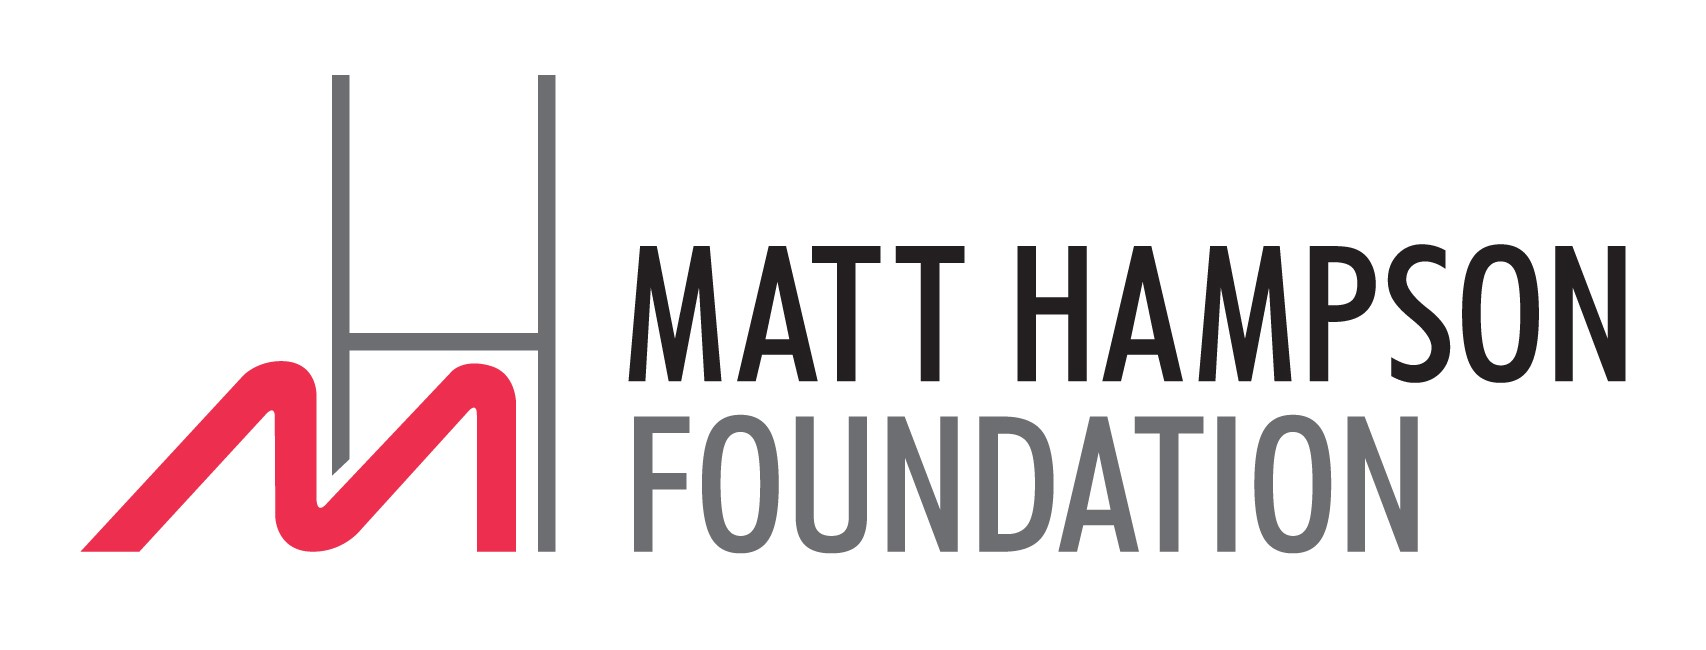 Matt Hampson Foundation